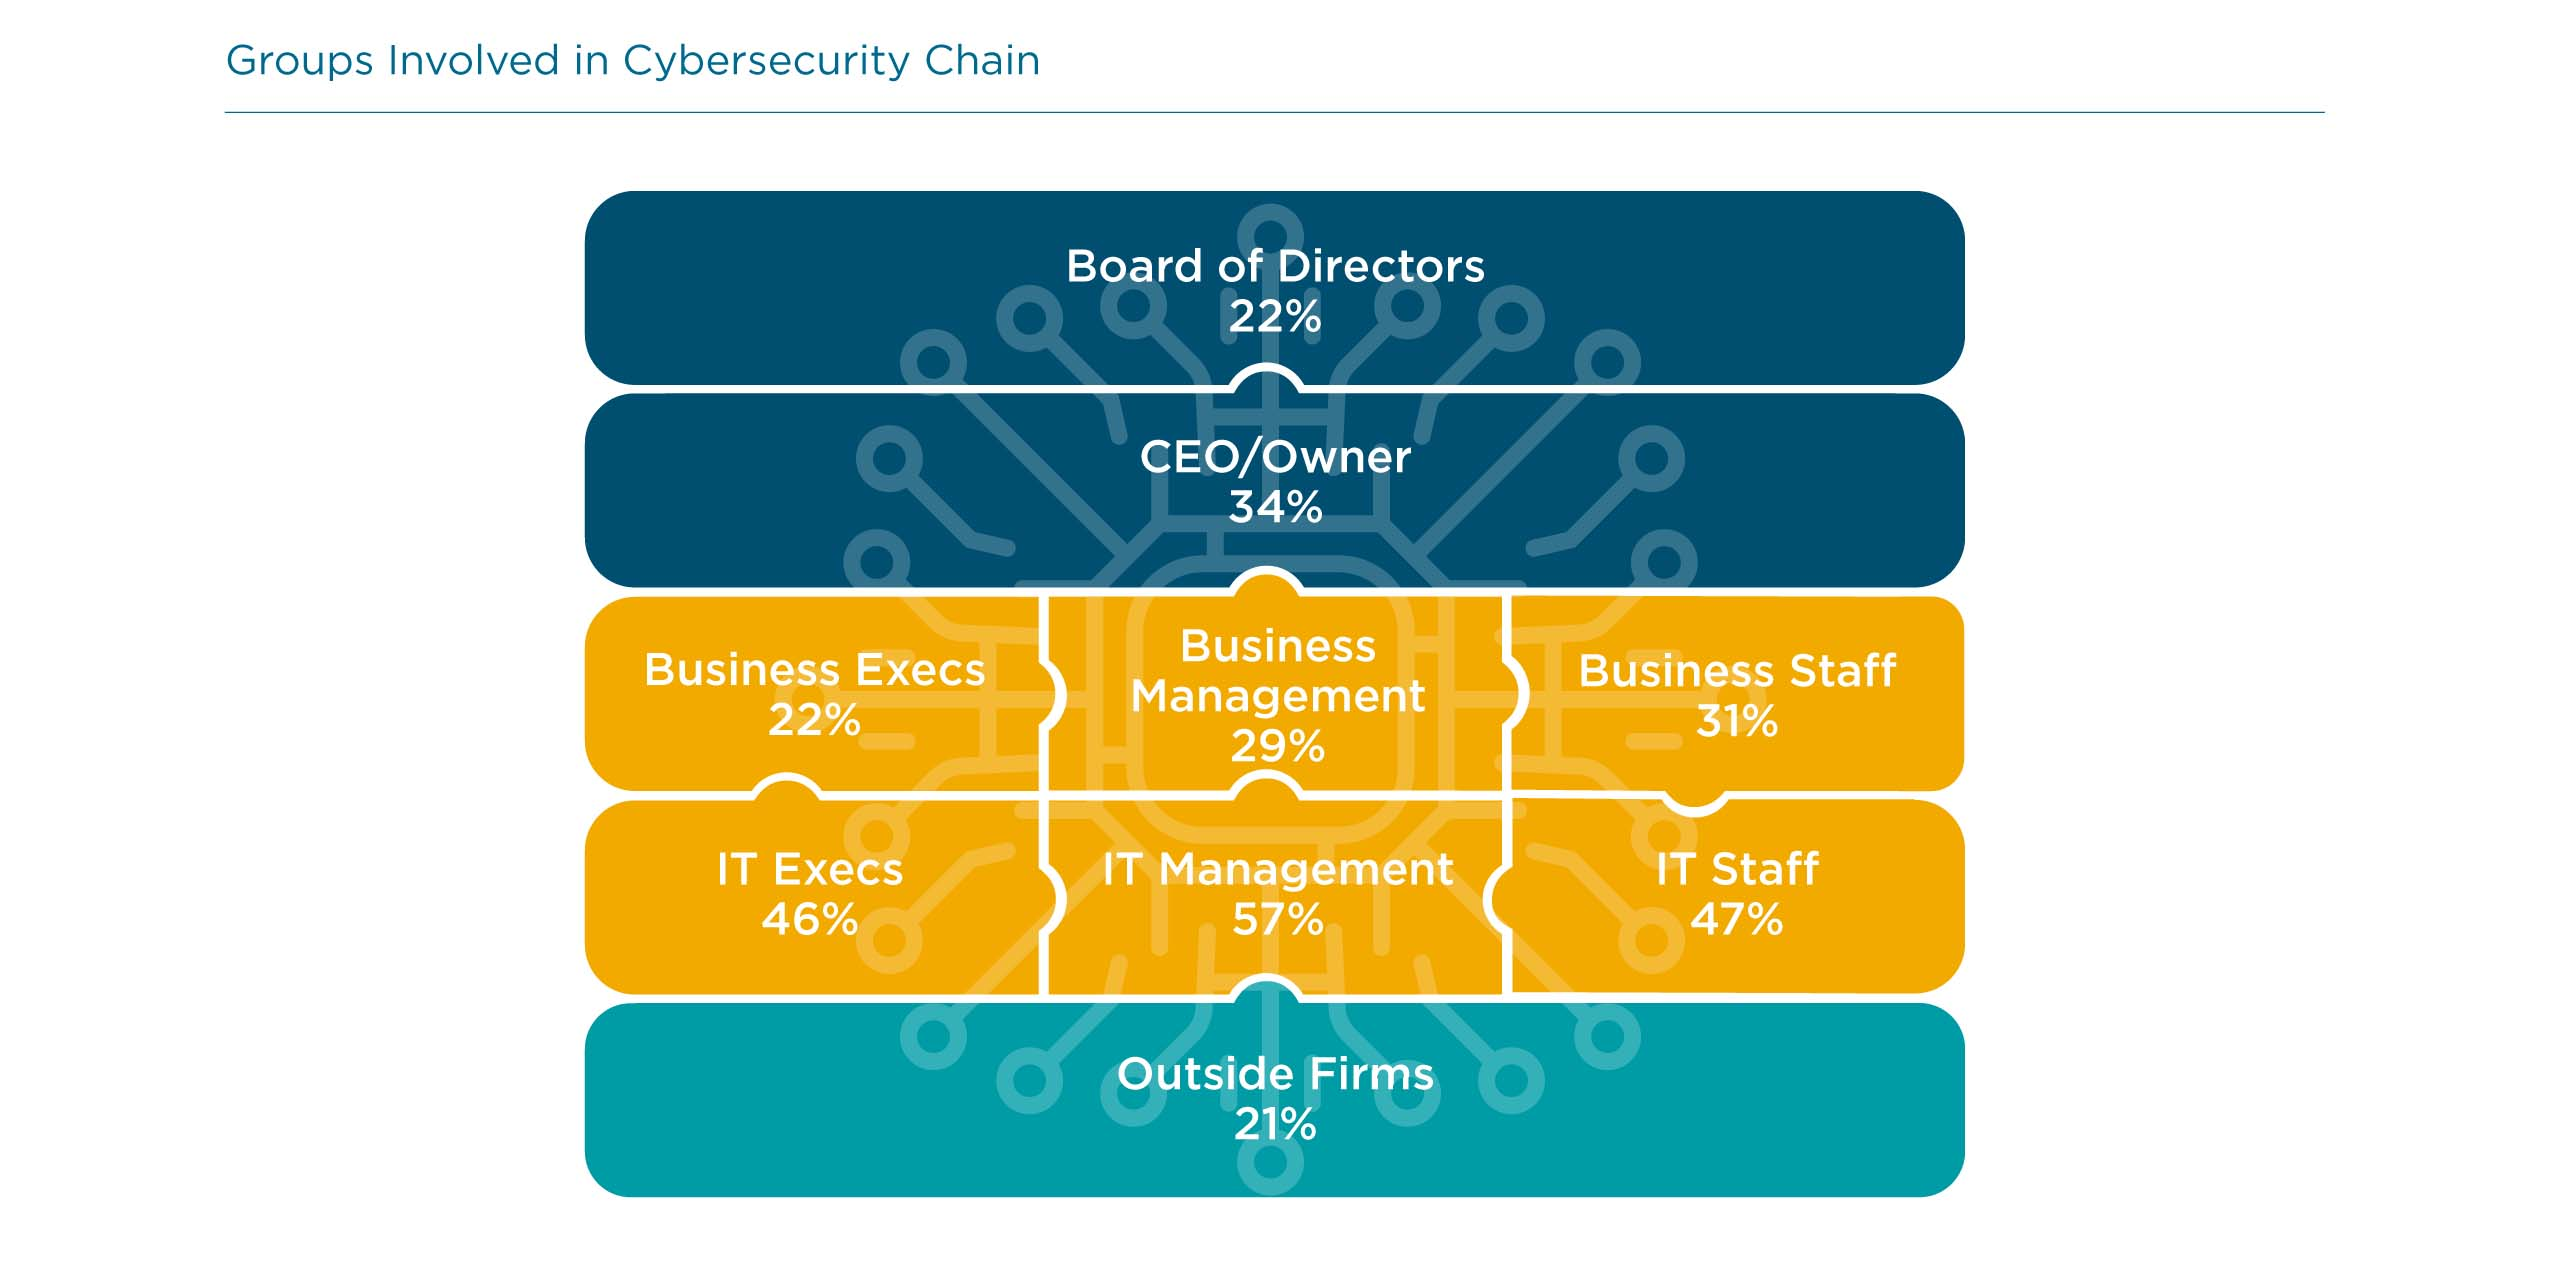 Groups Involved in Cybersecurity Chain